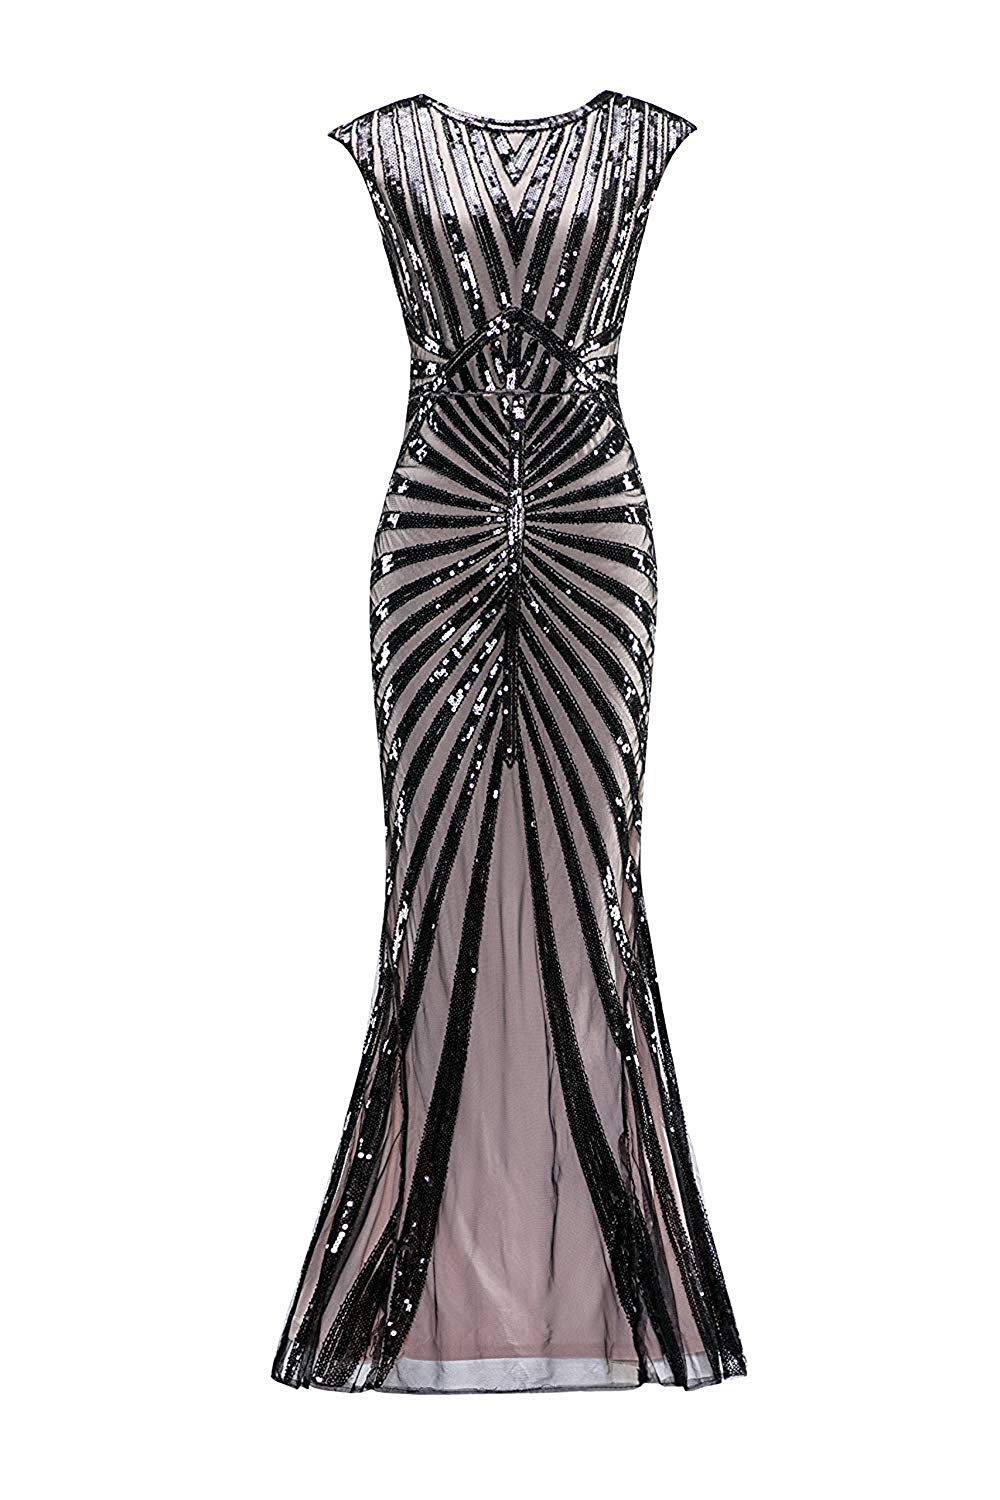 Plus size Formal Evening Dress 1920s Sequin Mermaid Formal Gatsby ...